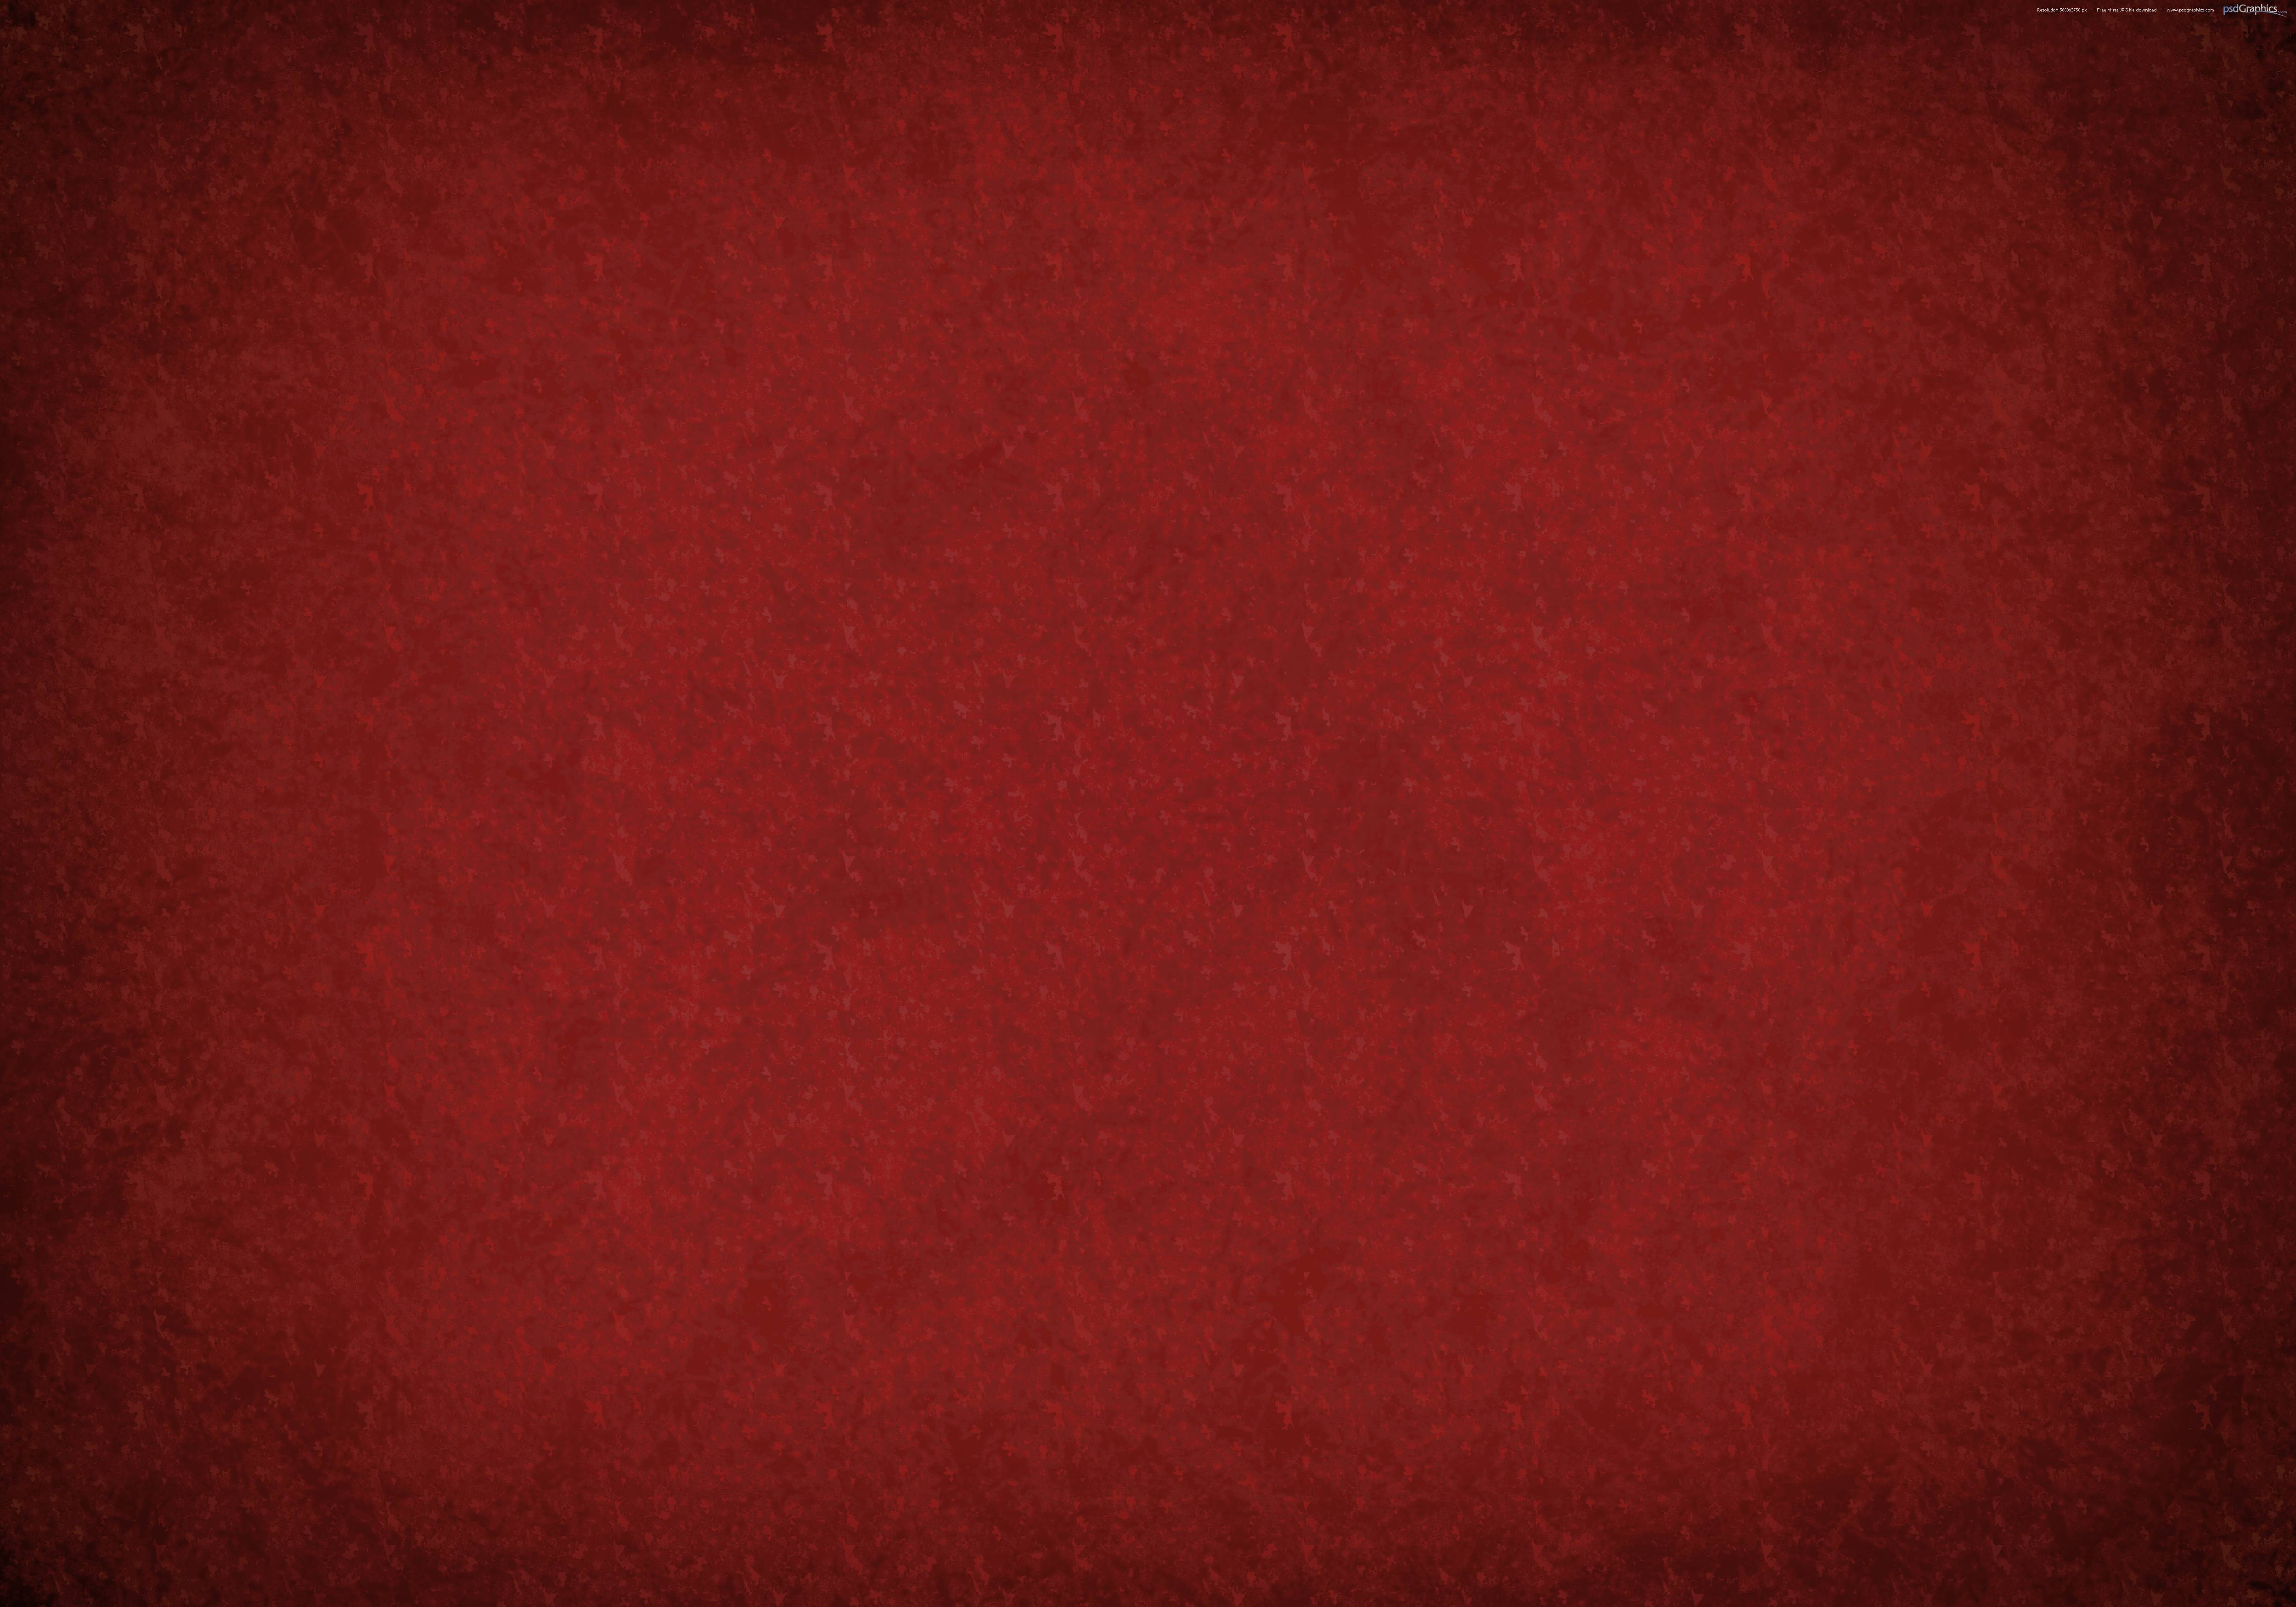 Red Textured Wallpaper 28175 Wallpapers HD | colourinwallpaper.